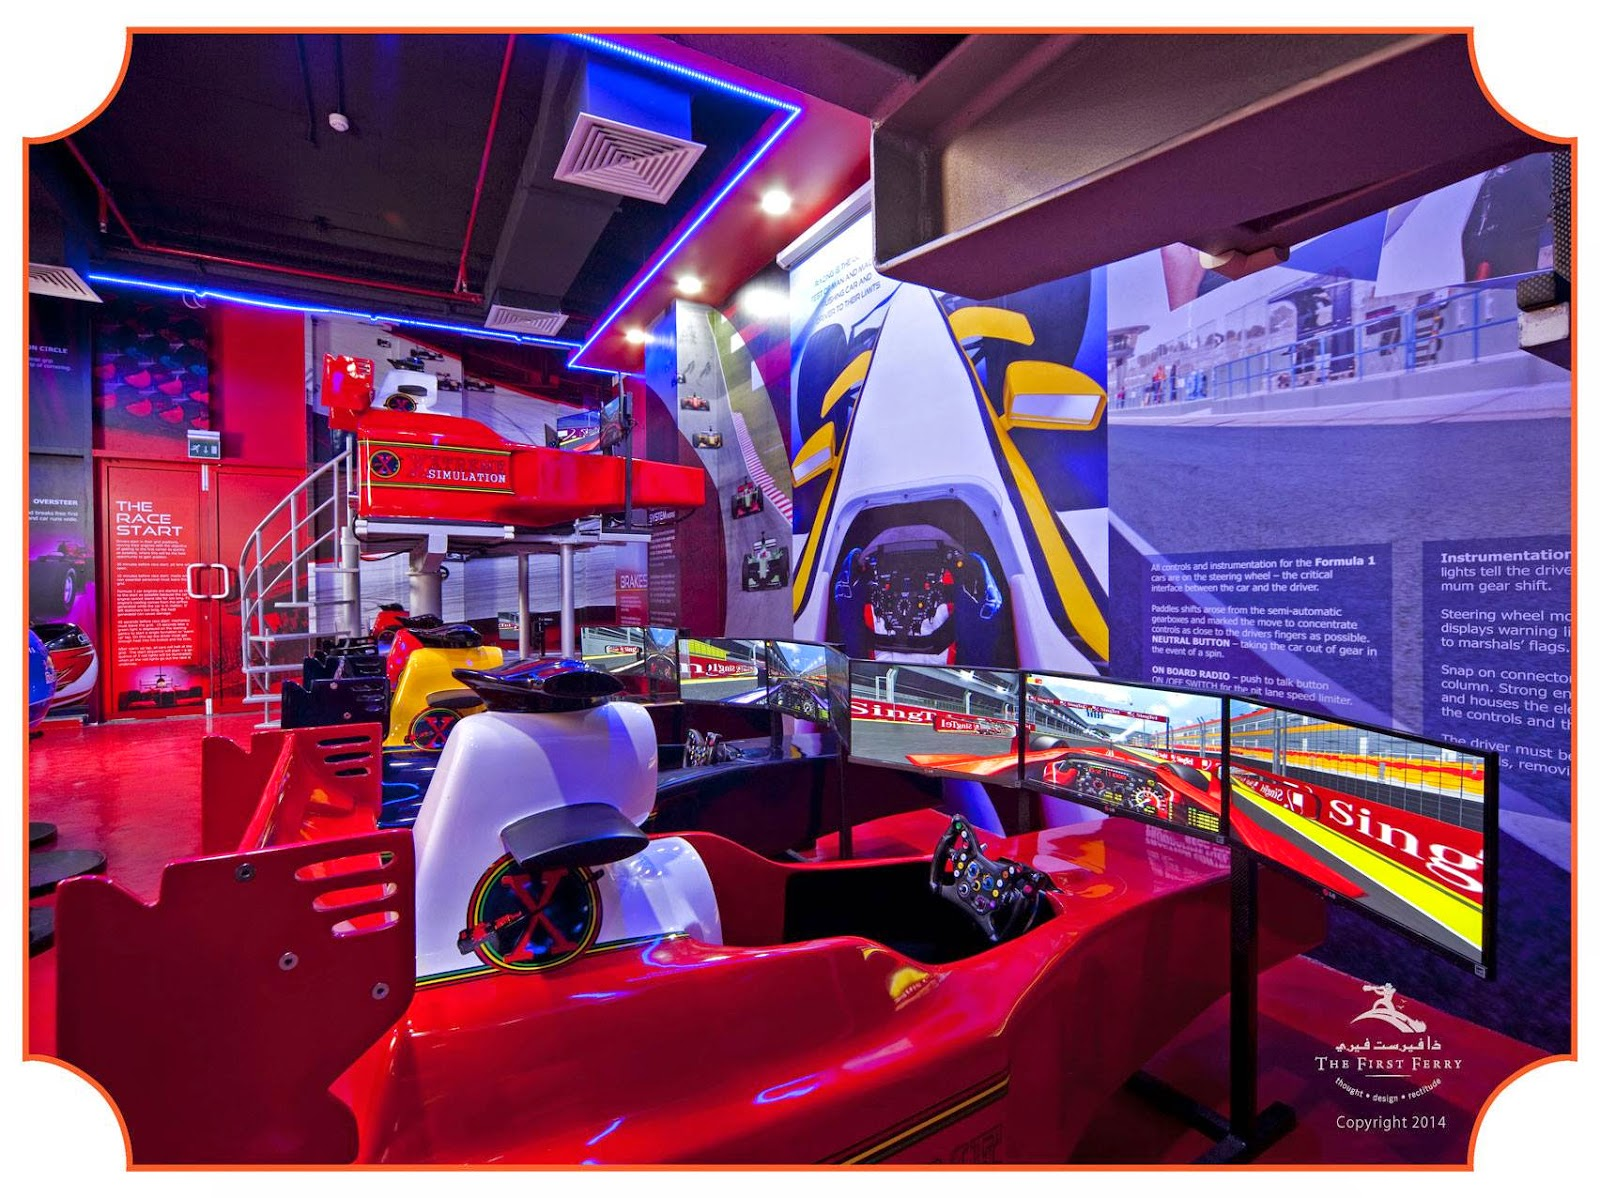 Xxtreme Simulation,  region's first racing simulation centre.